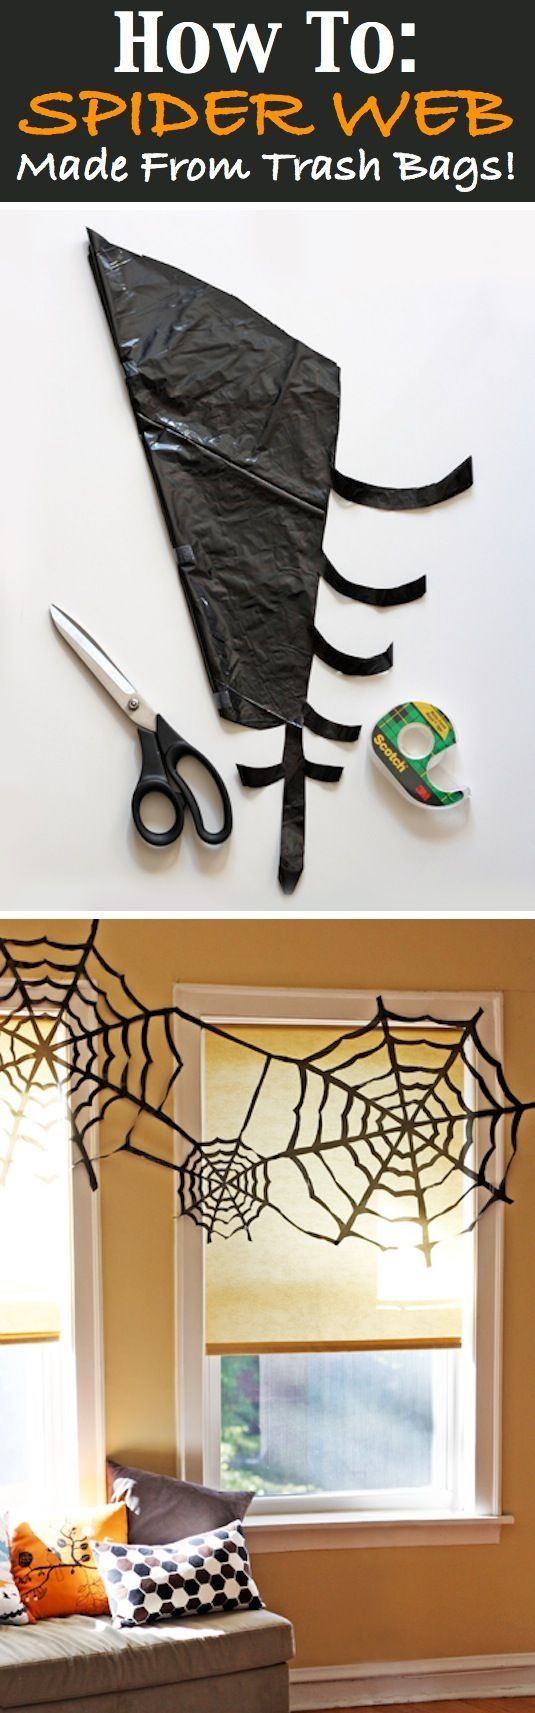 16 easy but awesome homemade halloween decorations by echkbet - Cheap Halloween Decorating Ideas